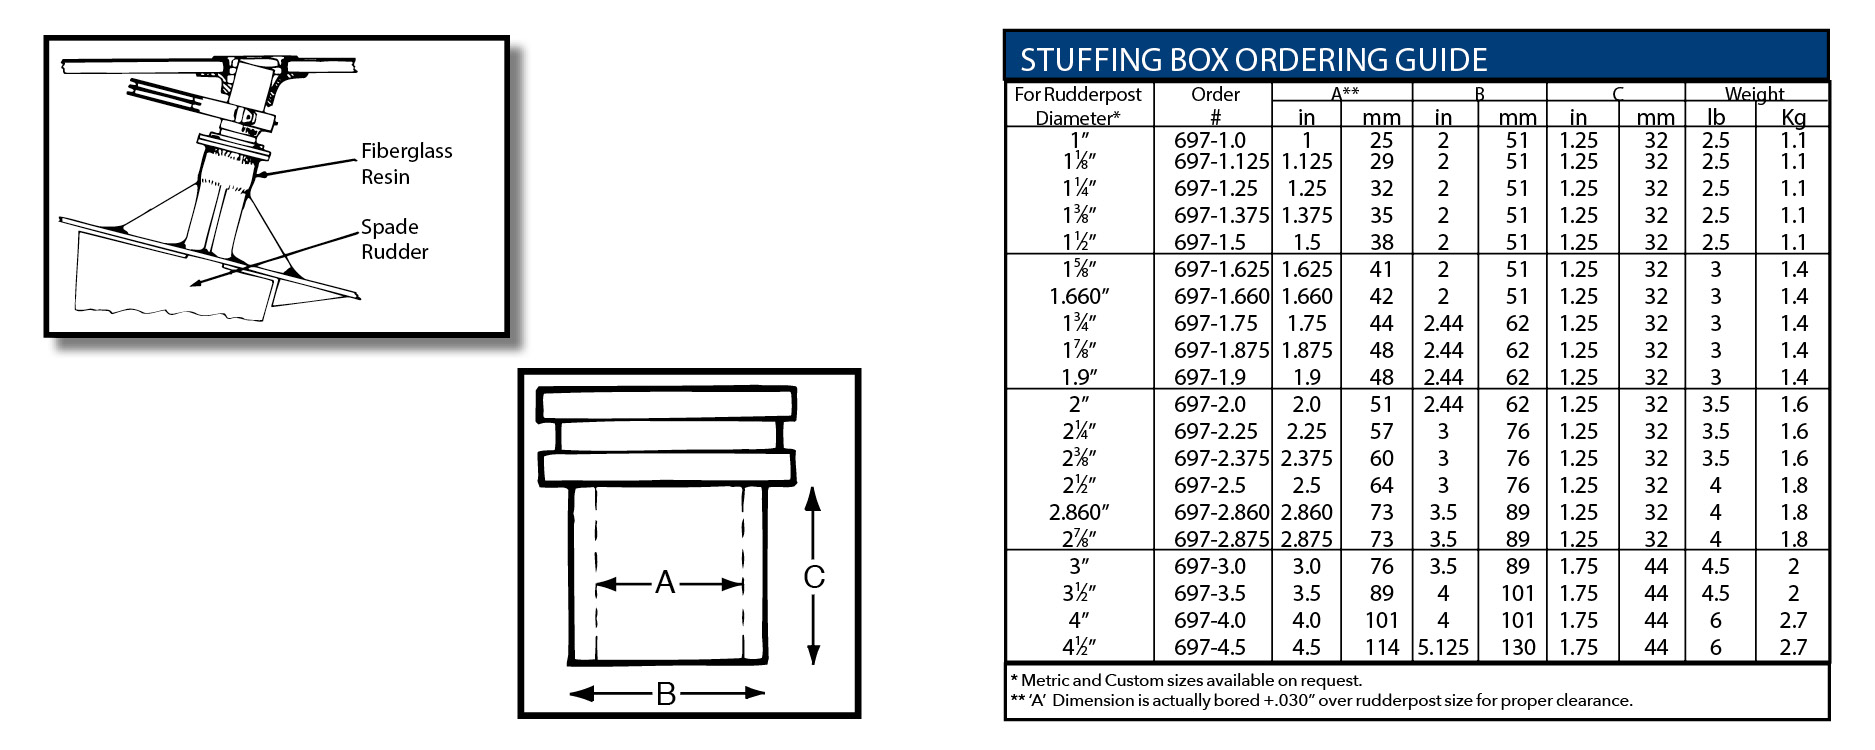 Rudder Post Stuffing Box/Bearing Ordering Guide